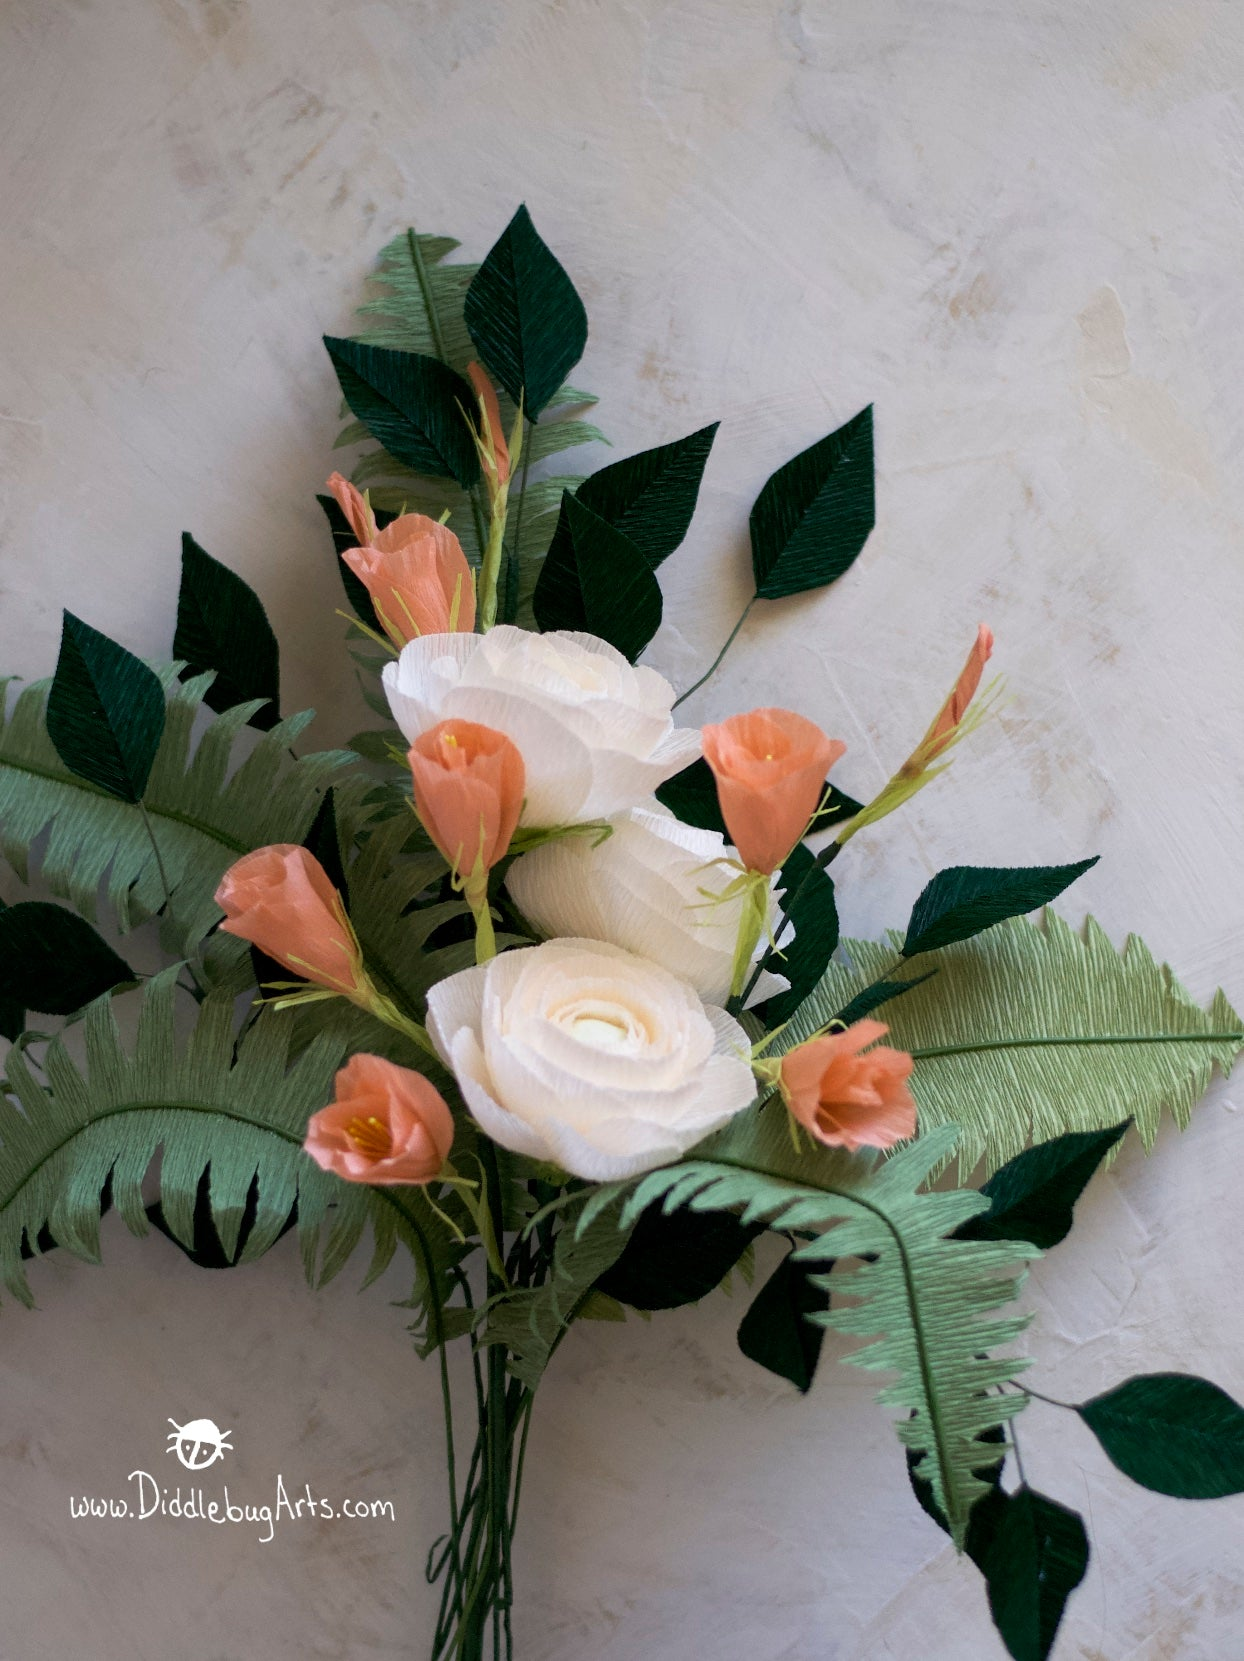 paper flower wedding bouquet with ranunculus, lisianthus, ferns and greenery